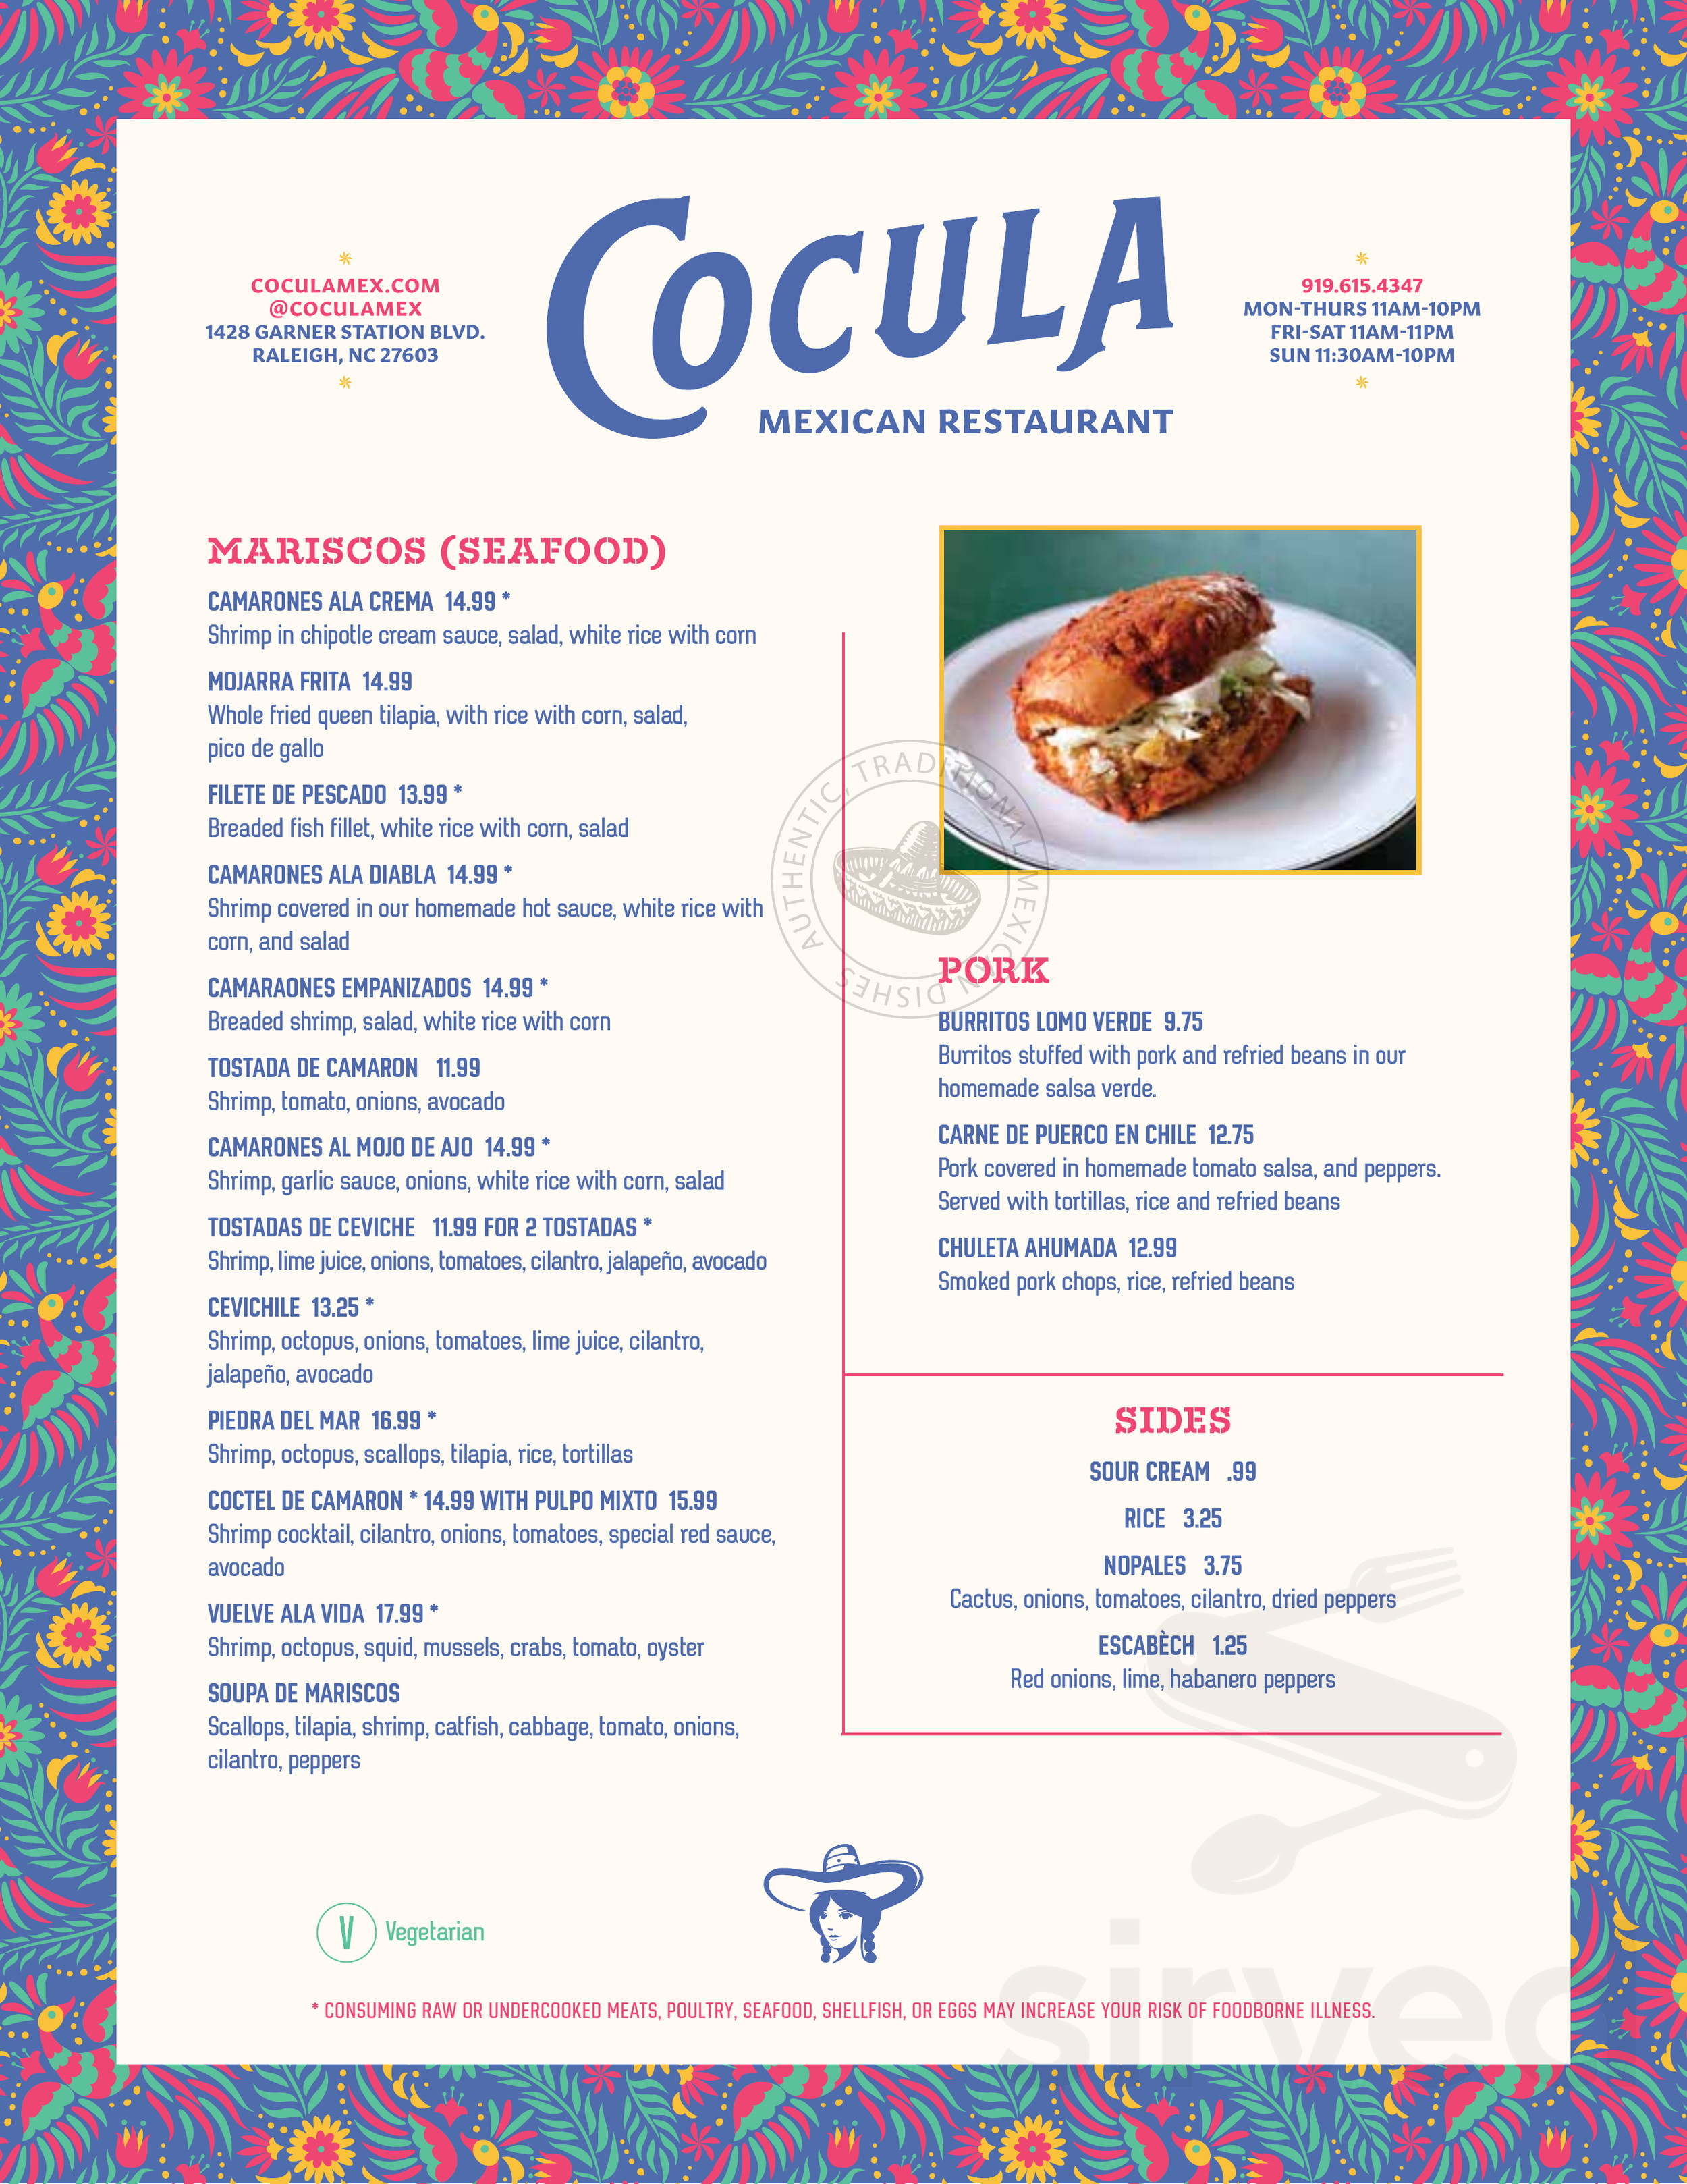 Menu For Cocula Mexican Restaurant In Raleigh North Carolina